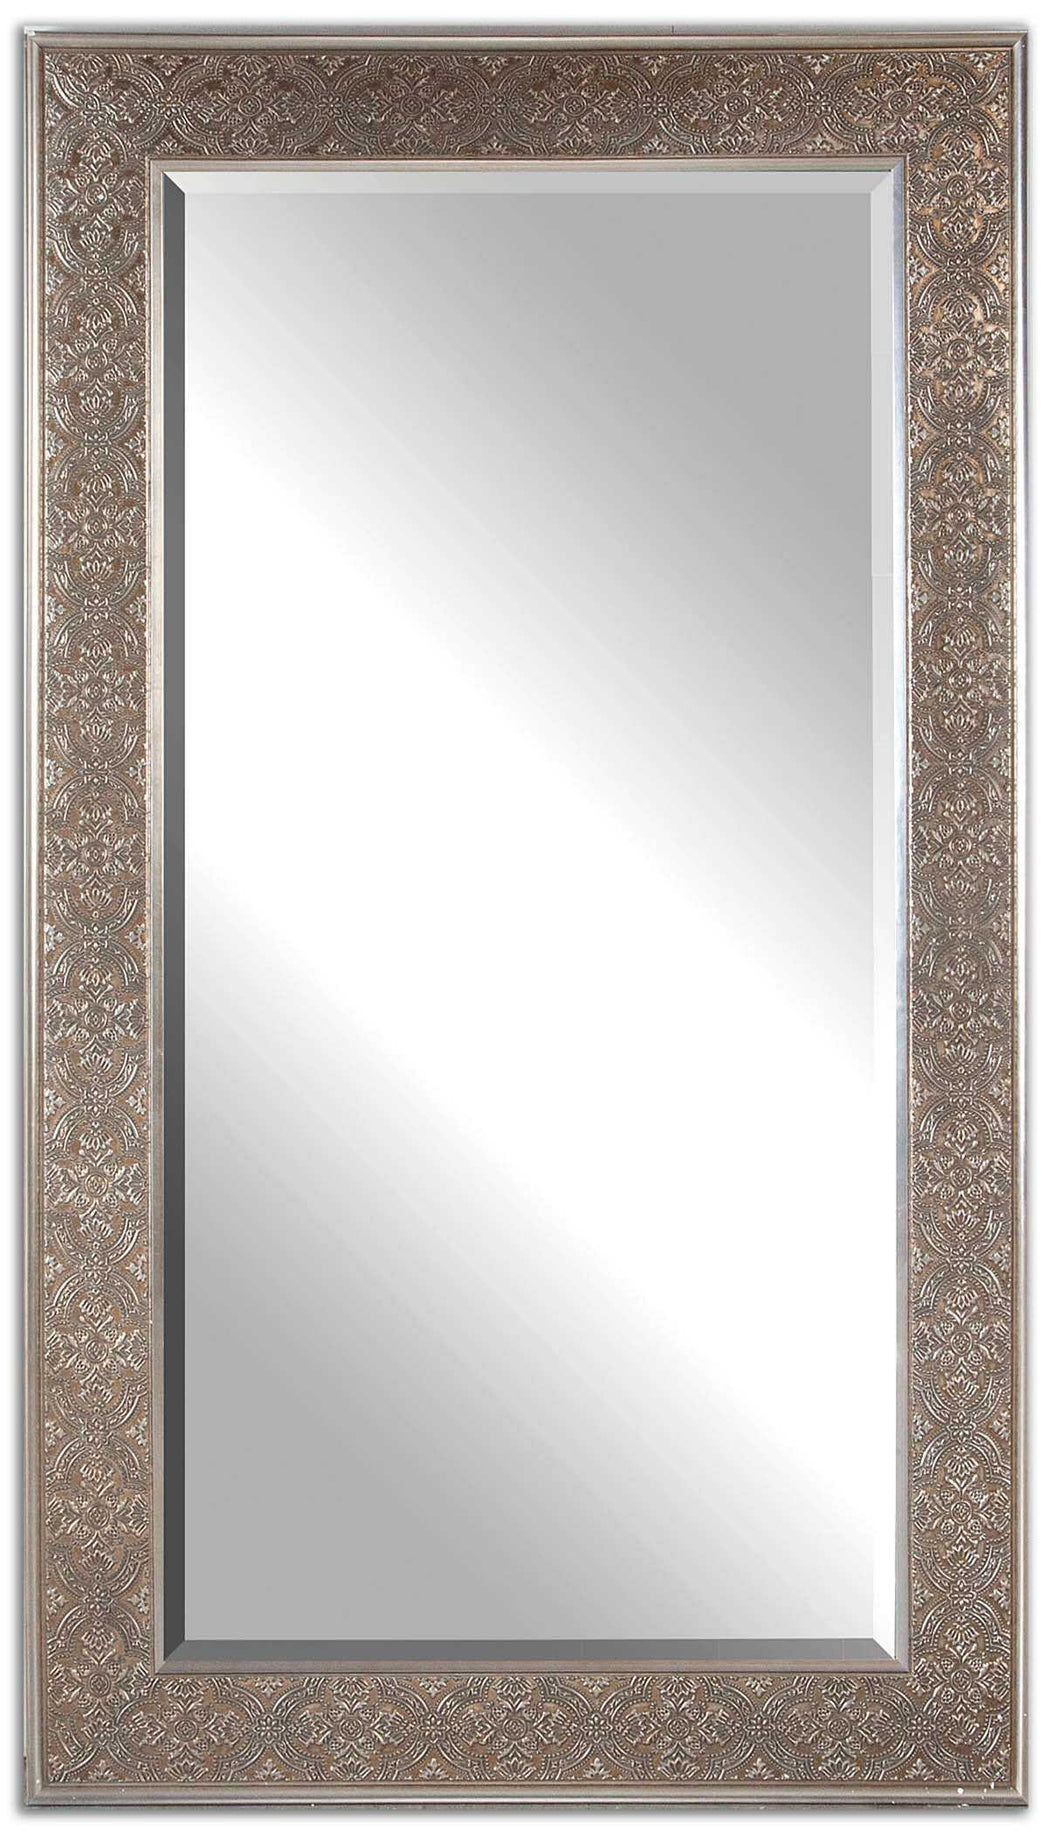 Villata Antique Silver Mirror, Mirrors, Laura of Pembroke